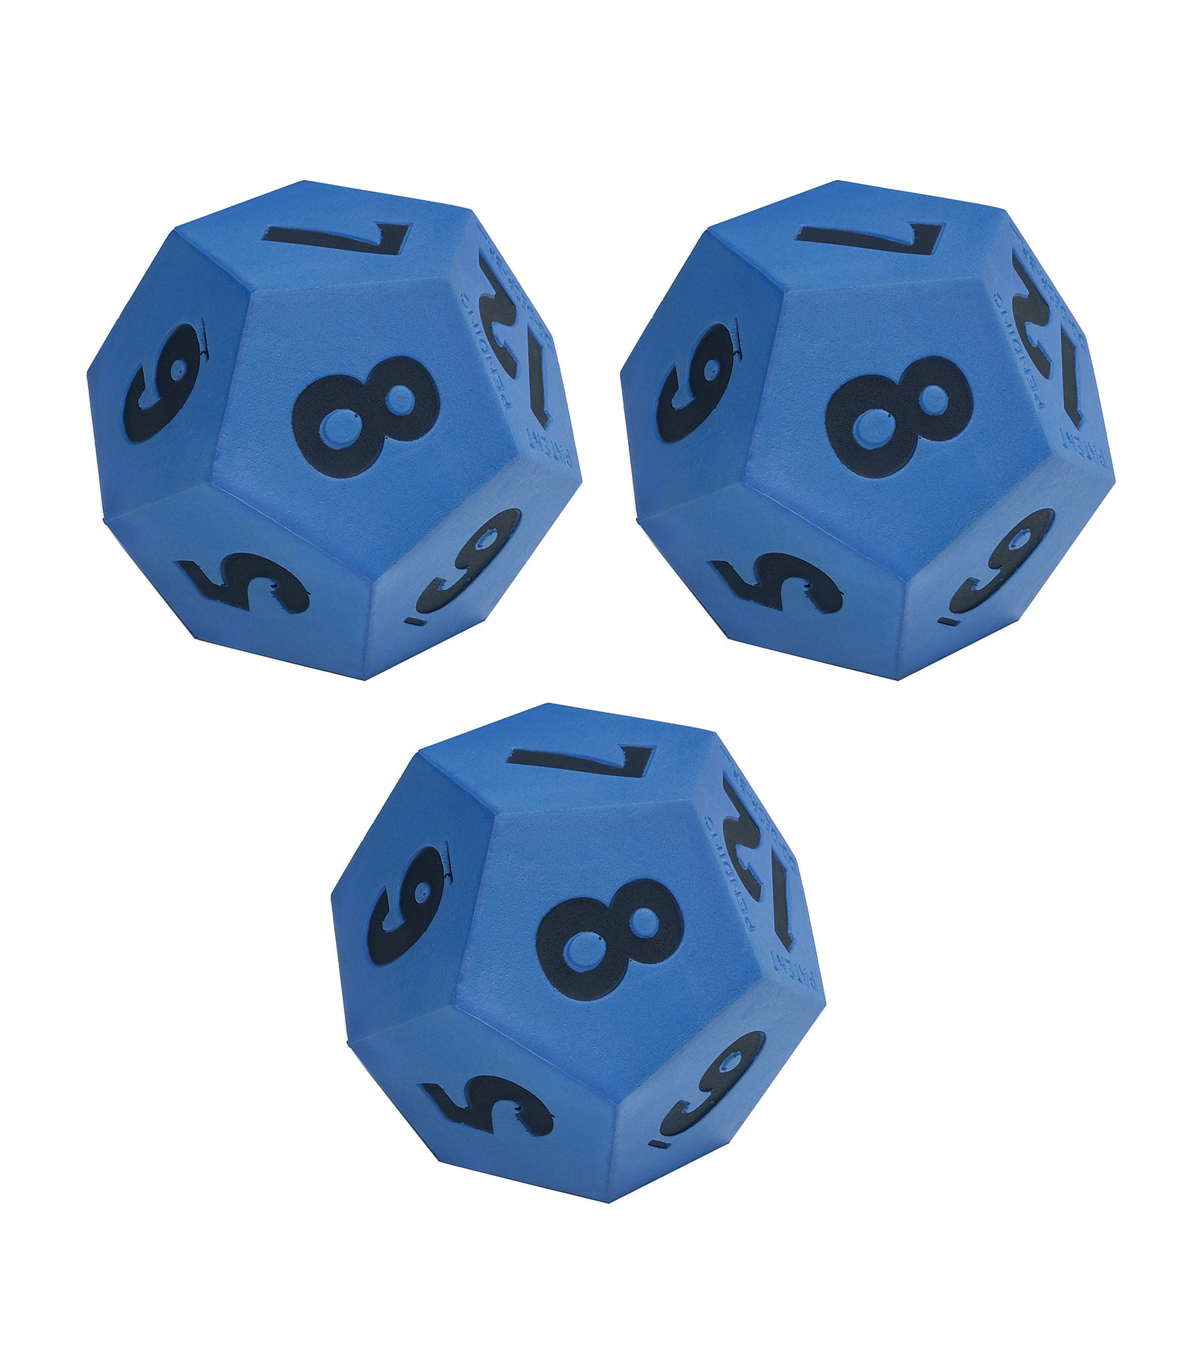 Learning Advantage Foam 12-Sided Demonstration Die, Pack of 3